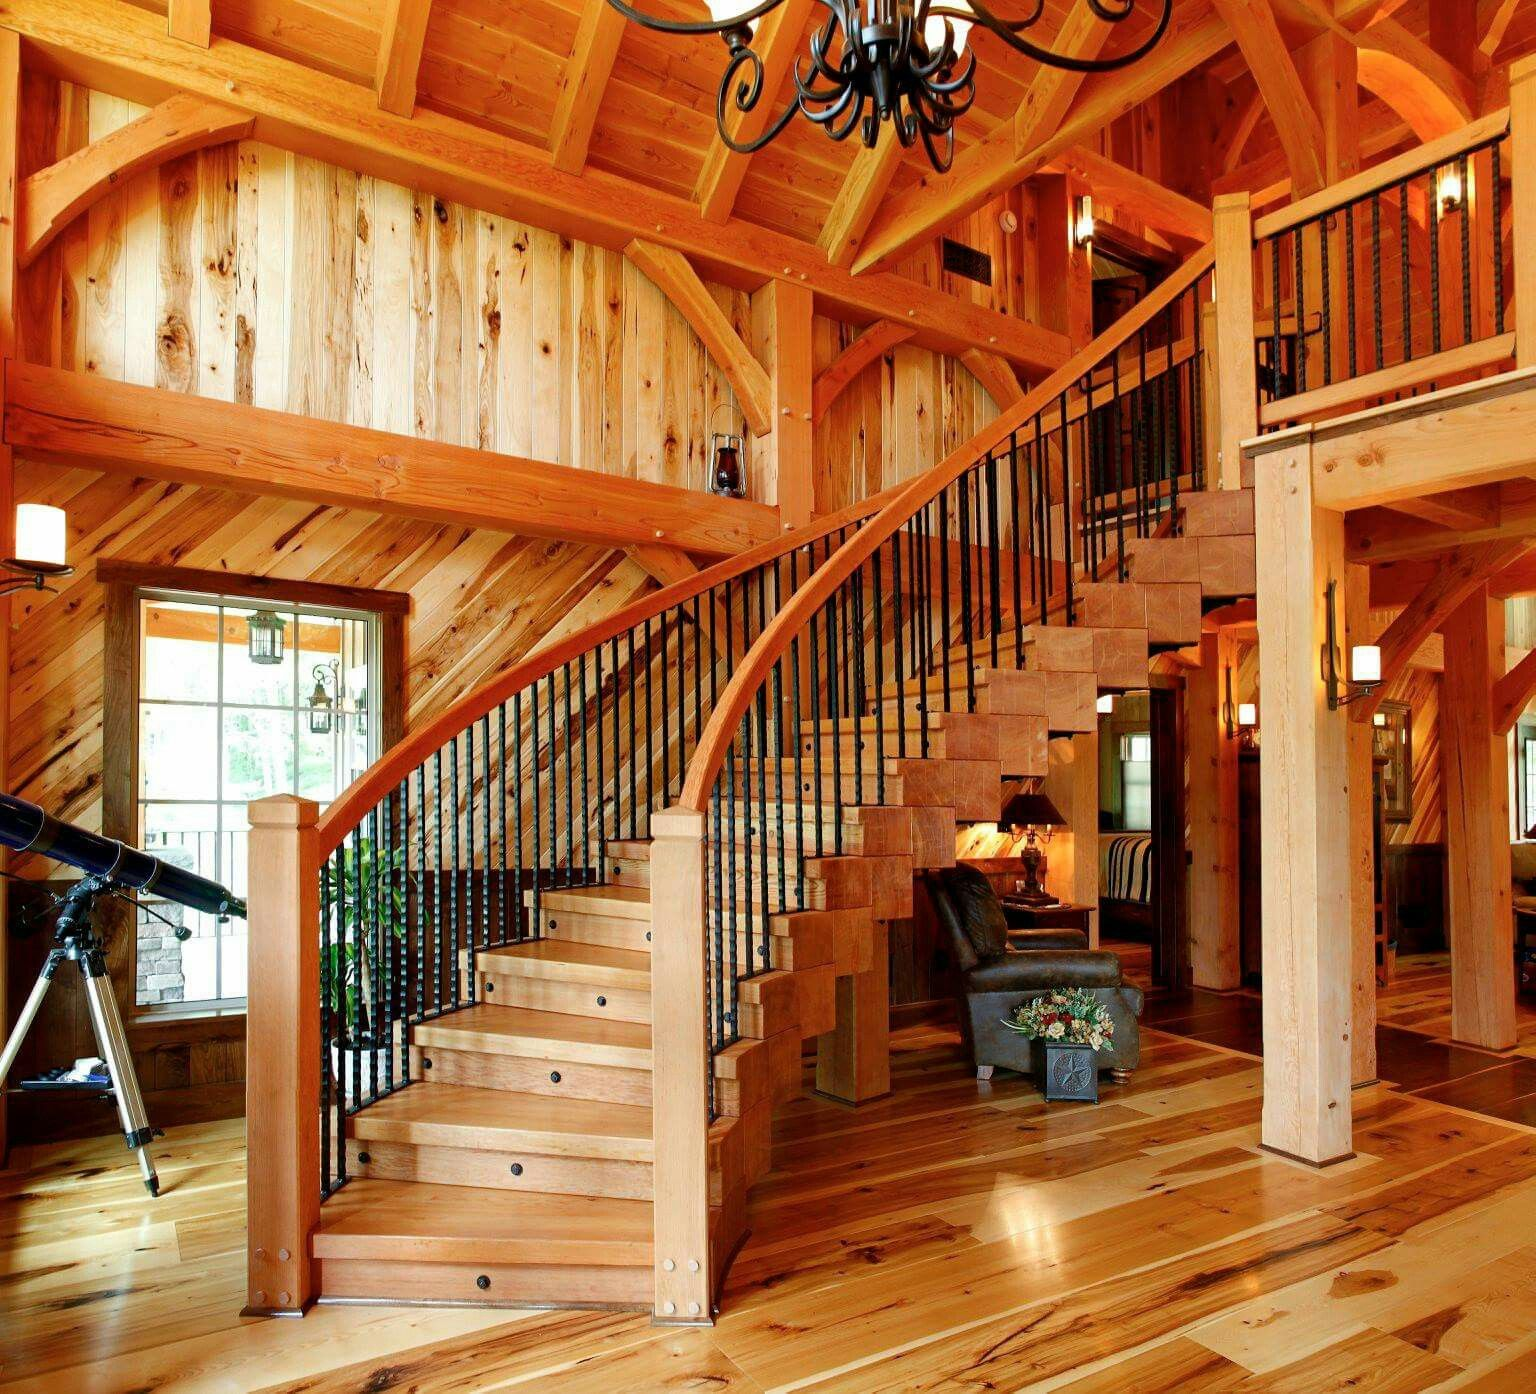 Pin de Autumn Eastman en log homes | Pinterest